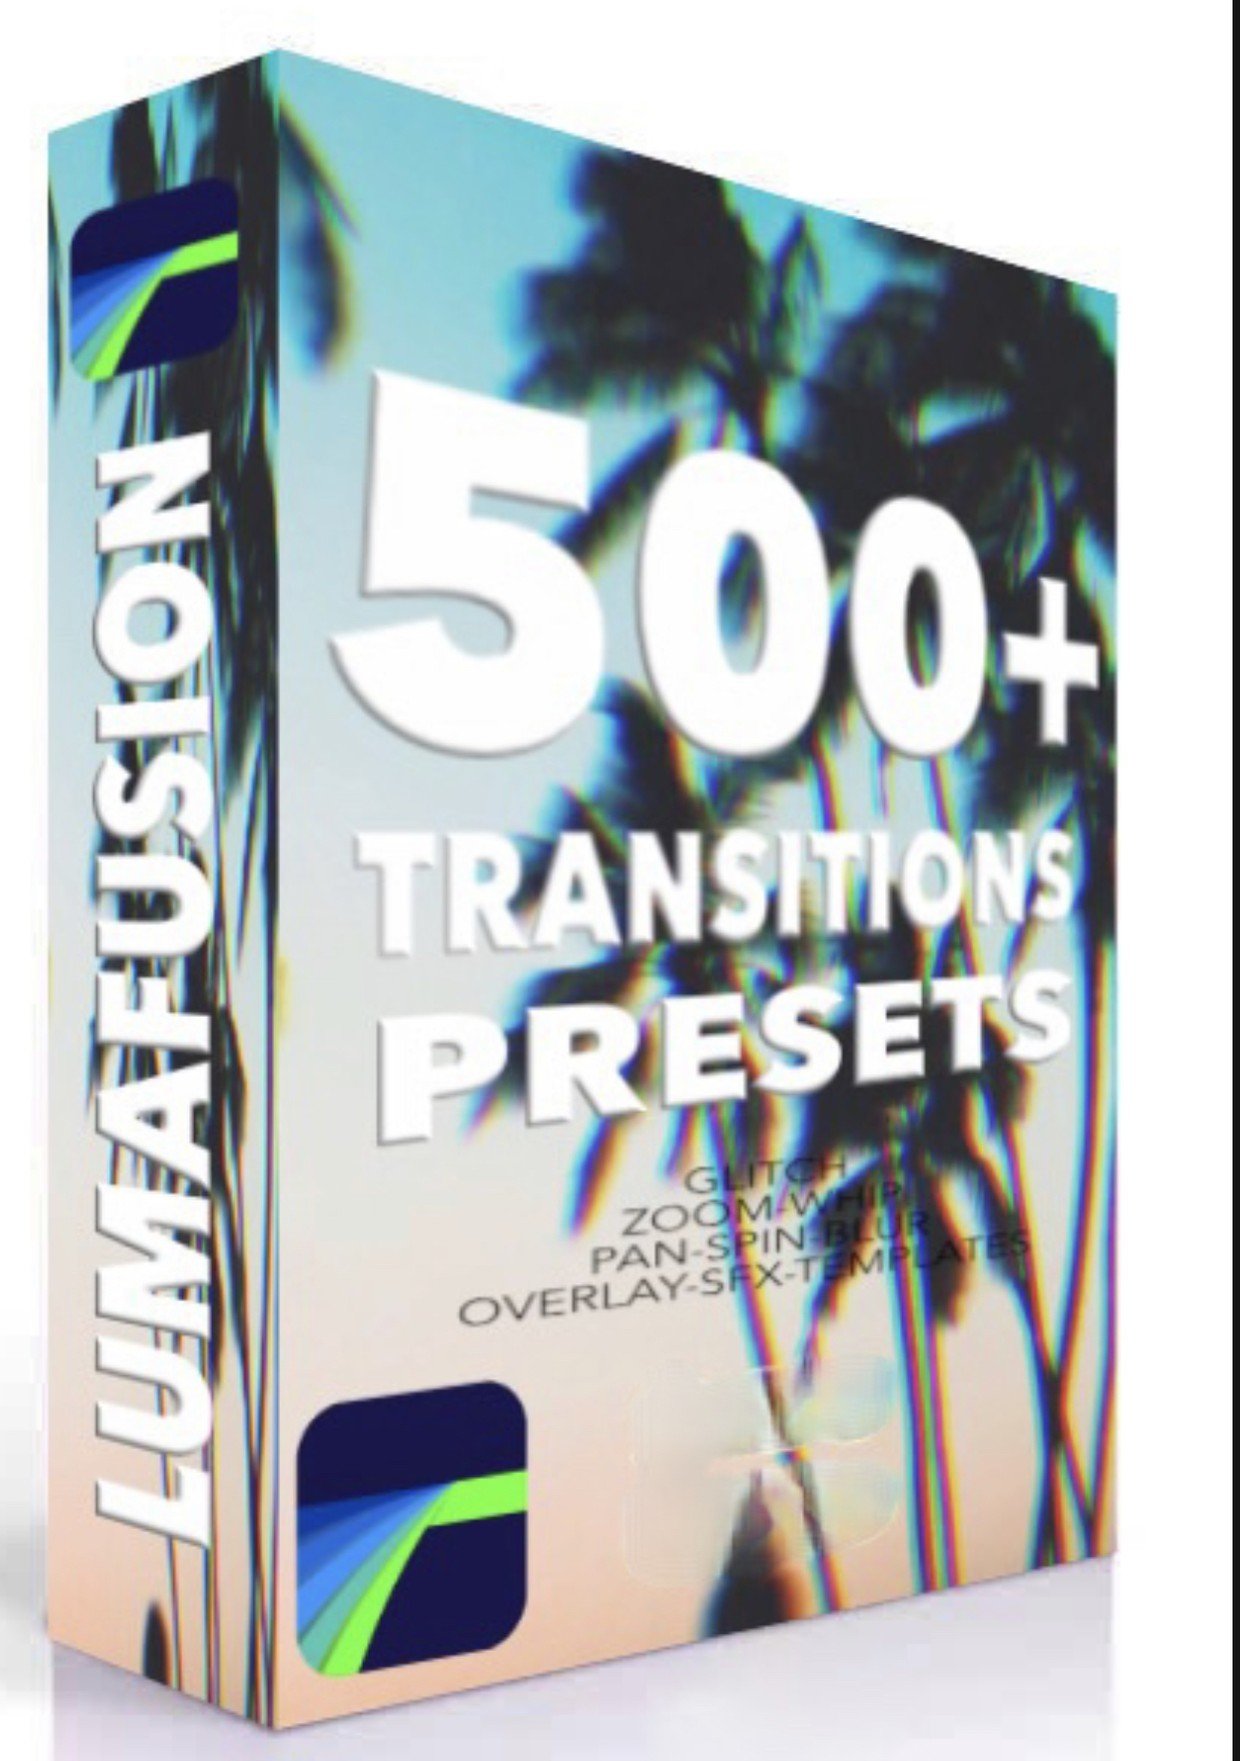 (Bestseller)LumaFusion MEGA PACK 1250++(ALL PRESETS!) NEWLY UPDATED!